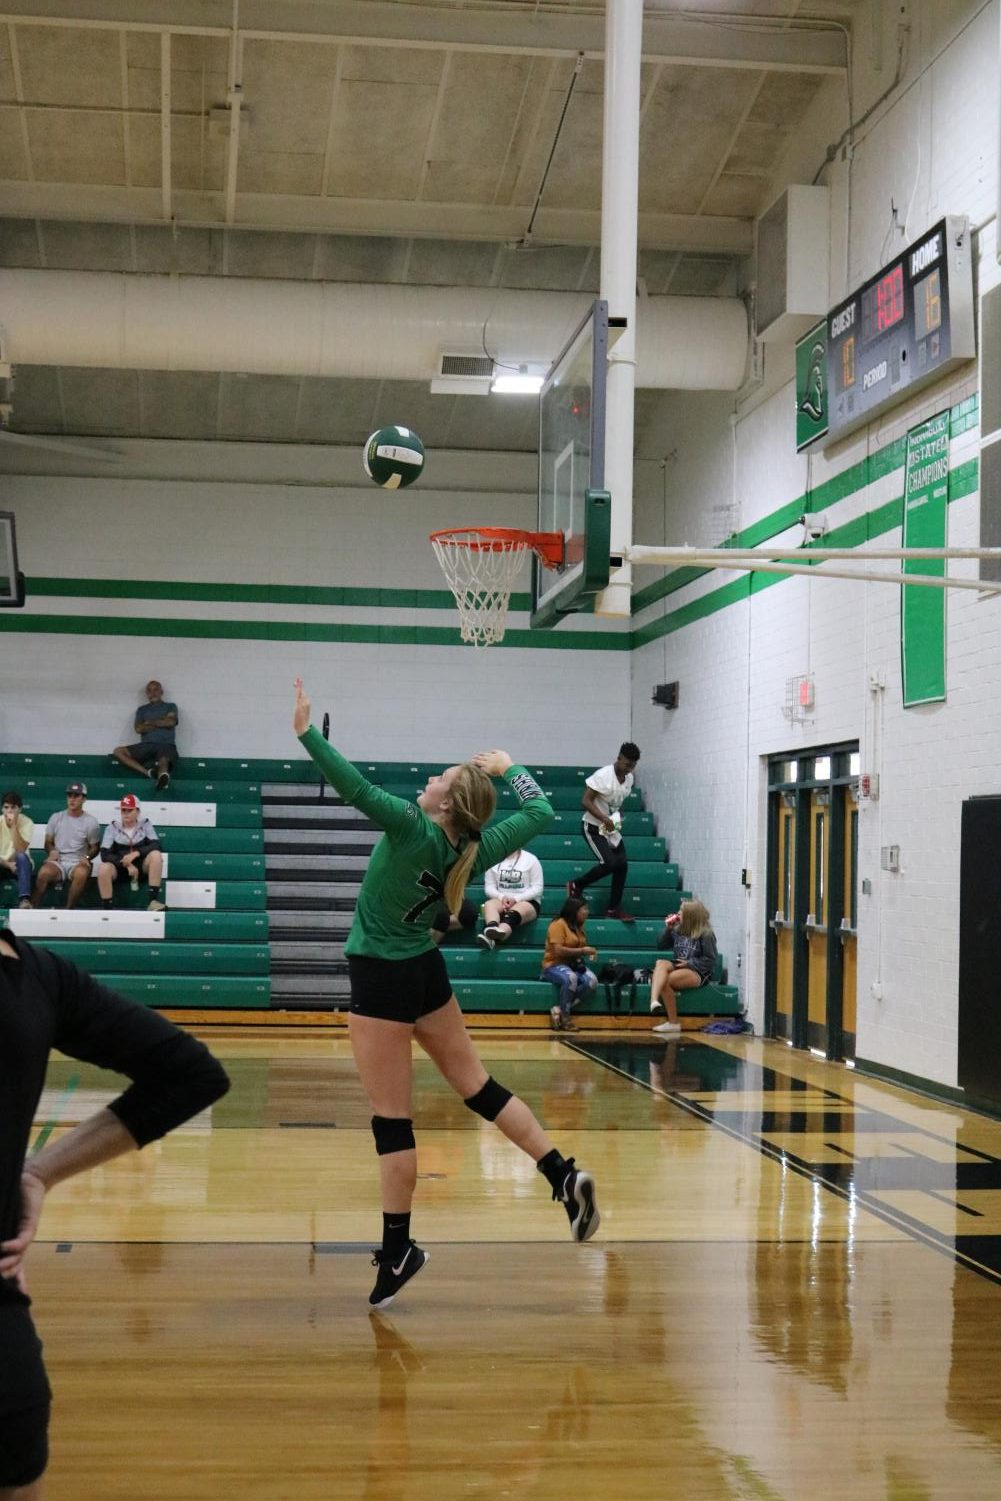 Clemmons%2C+serving+the+ball.